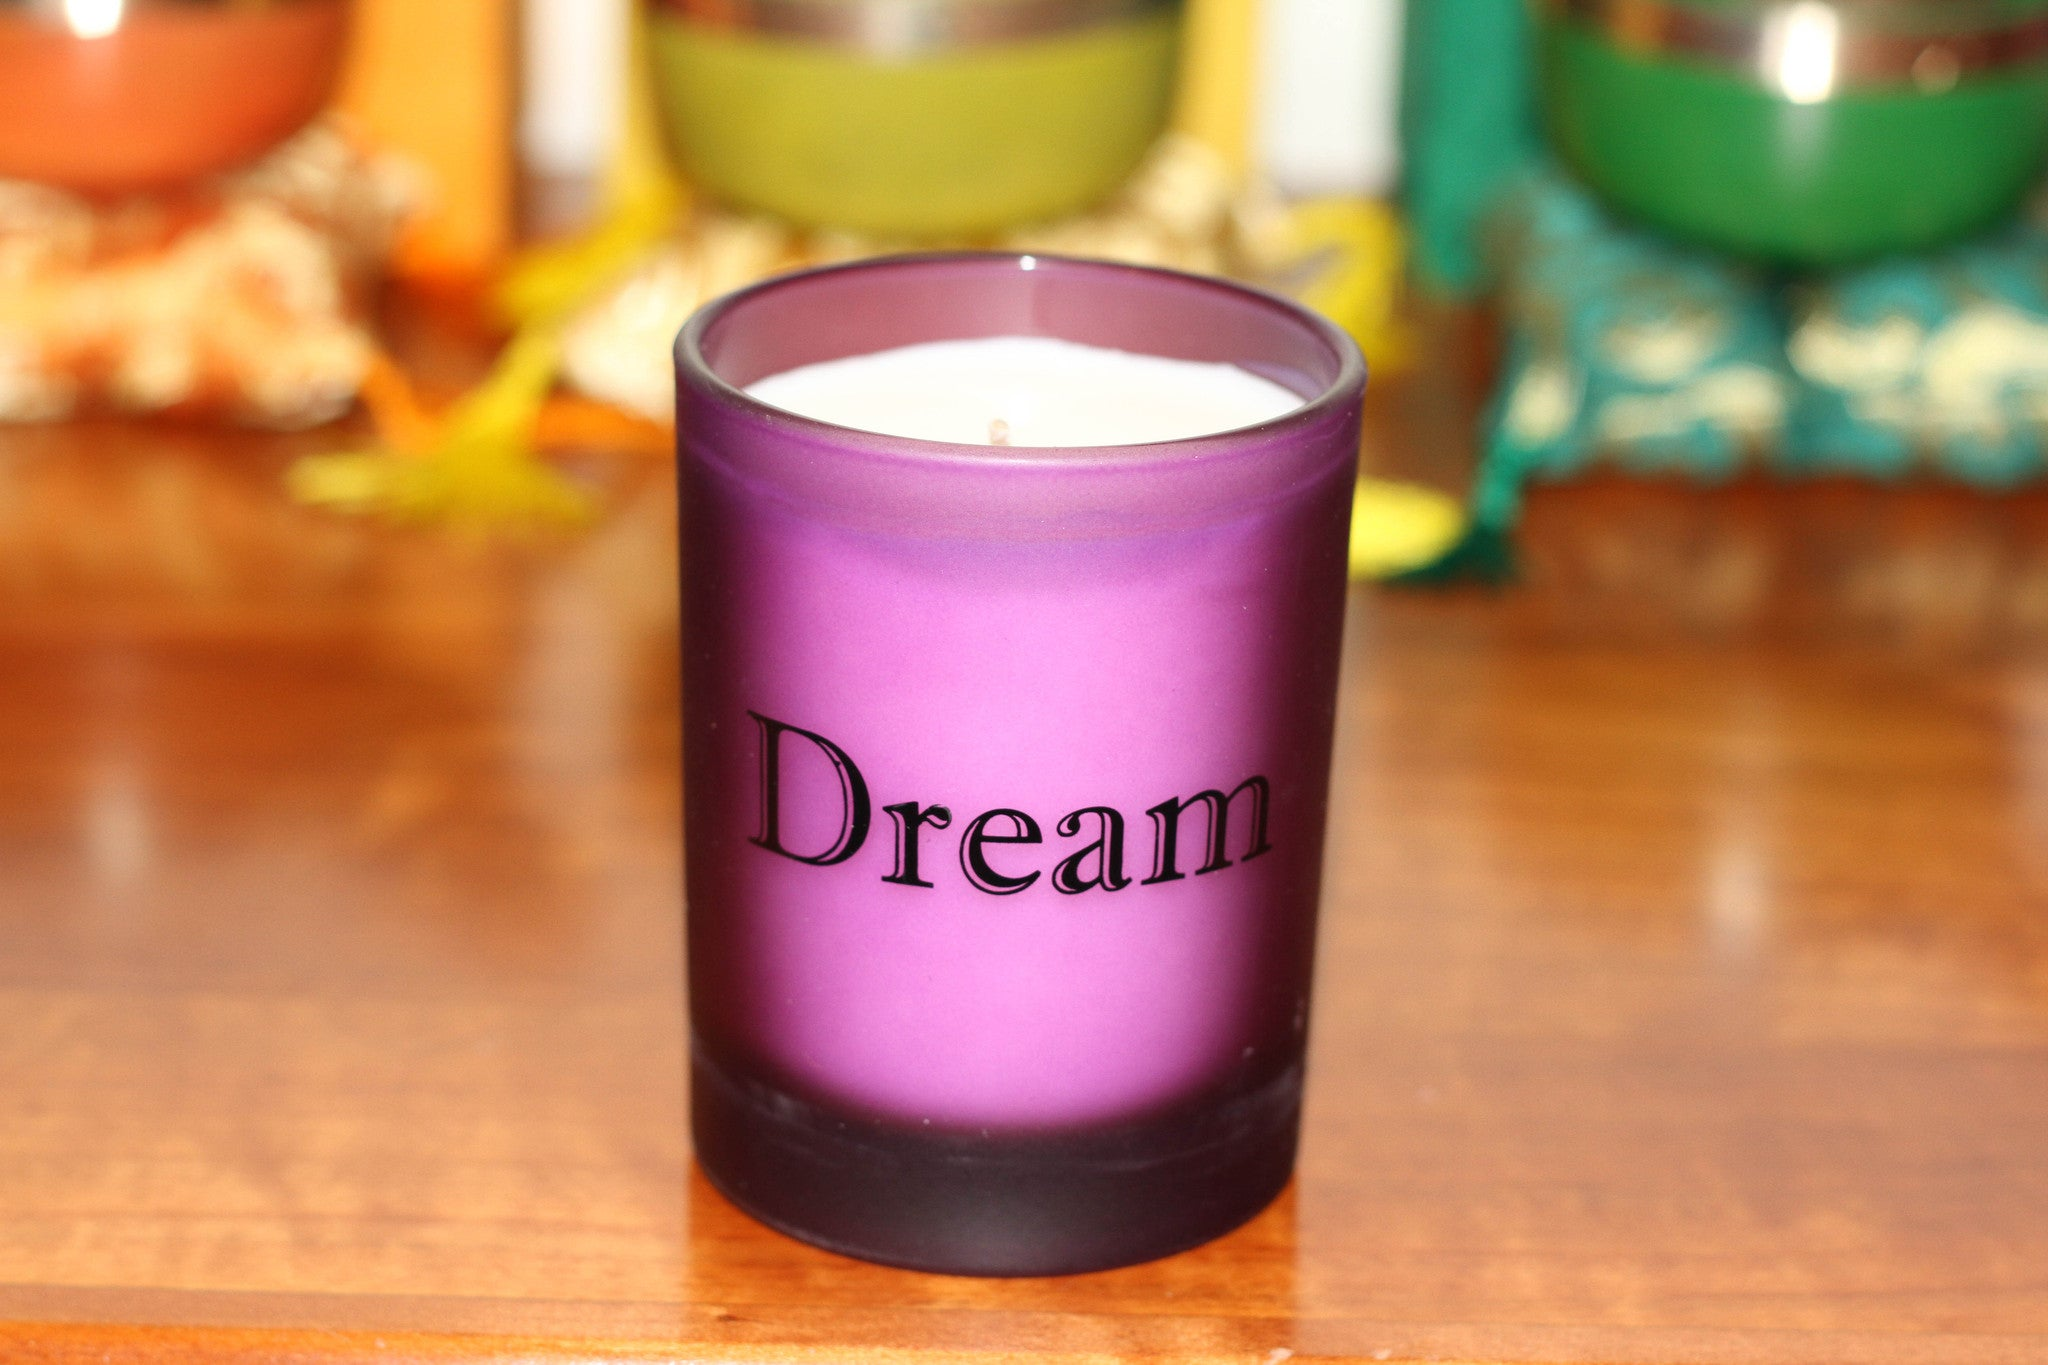 Dream candle - double scented